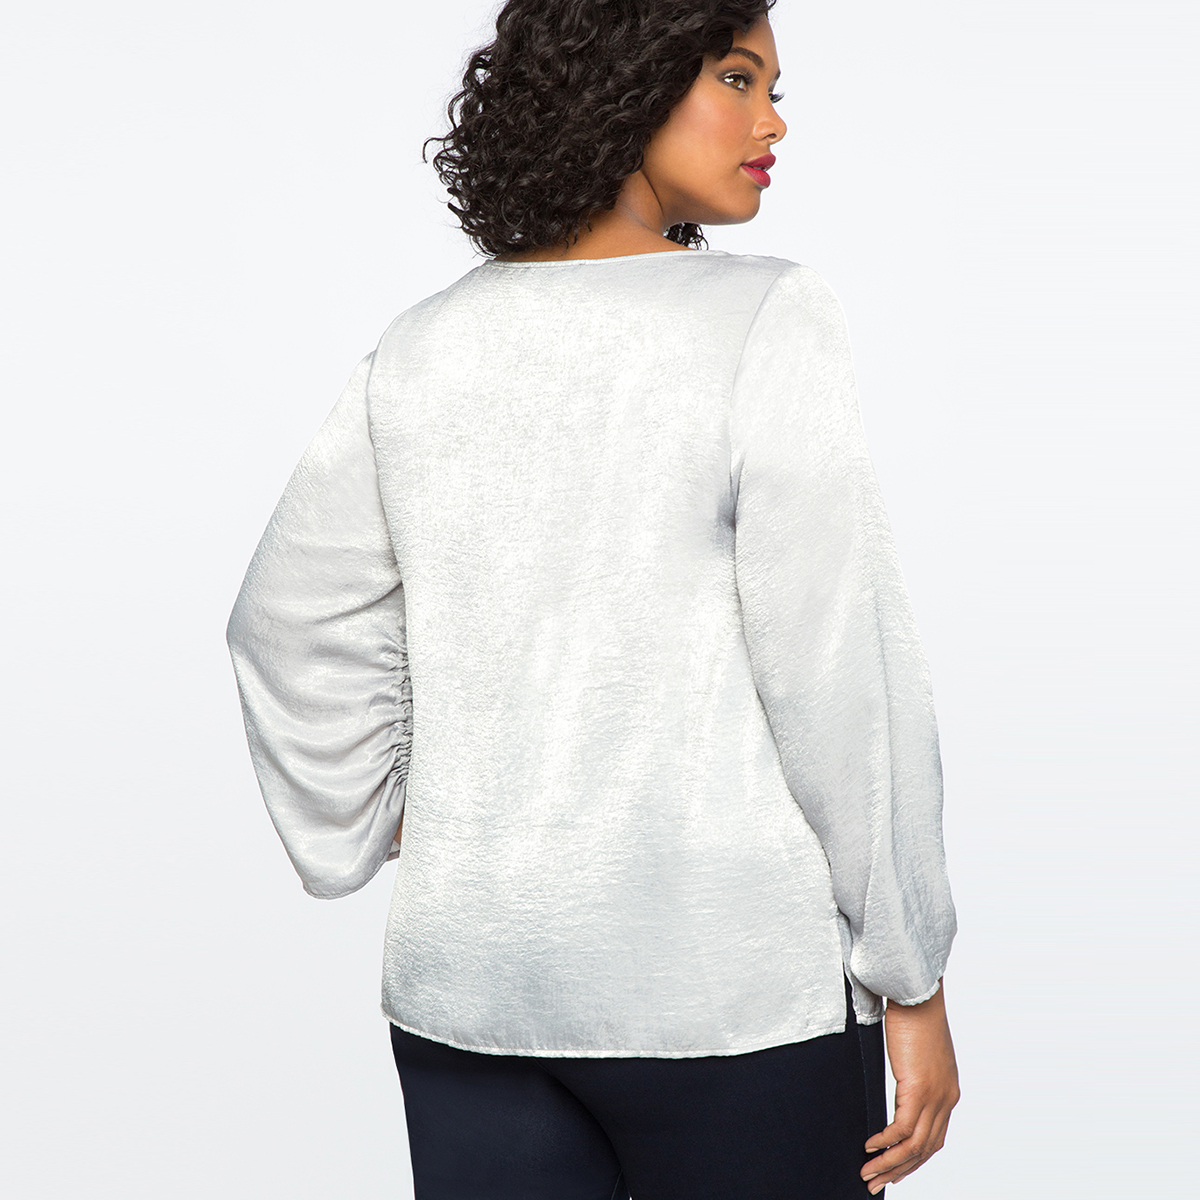 MCO 2018 Spring Lace Up Long Sleeves Plus Size Satin Women's Top Simple Office Ladies White Blouse Basic Big Women Tops 5xl 6xl 3